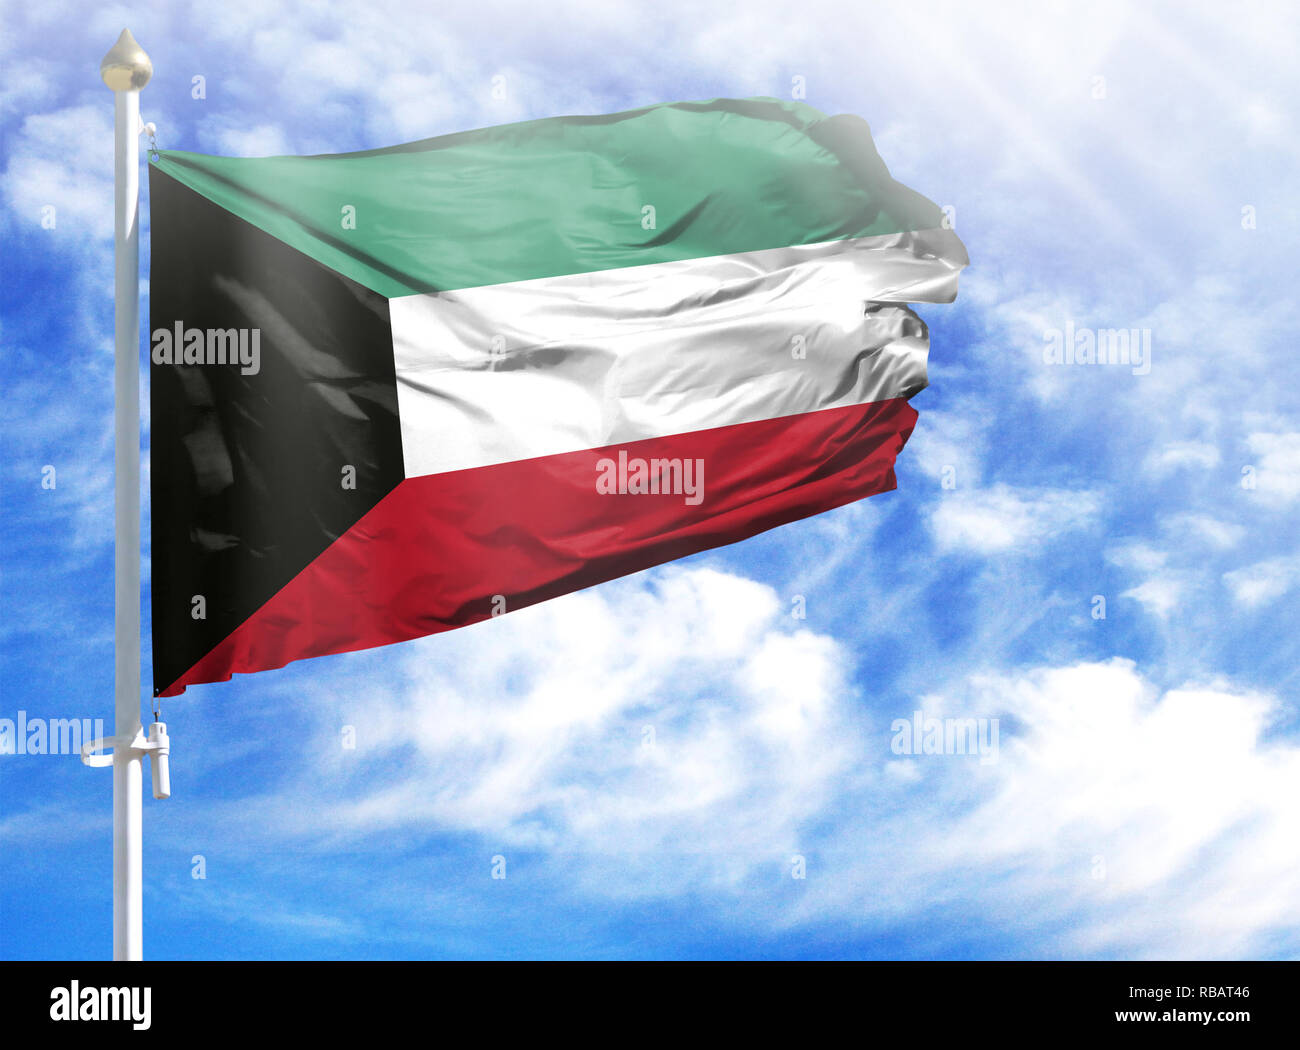 National flag of Kuwait on a flagpole in front of blue sky. - Stock Image